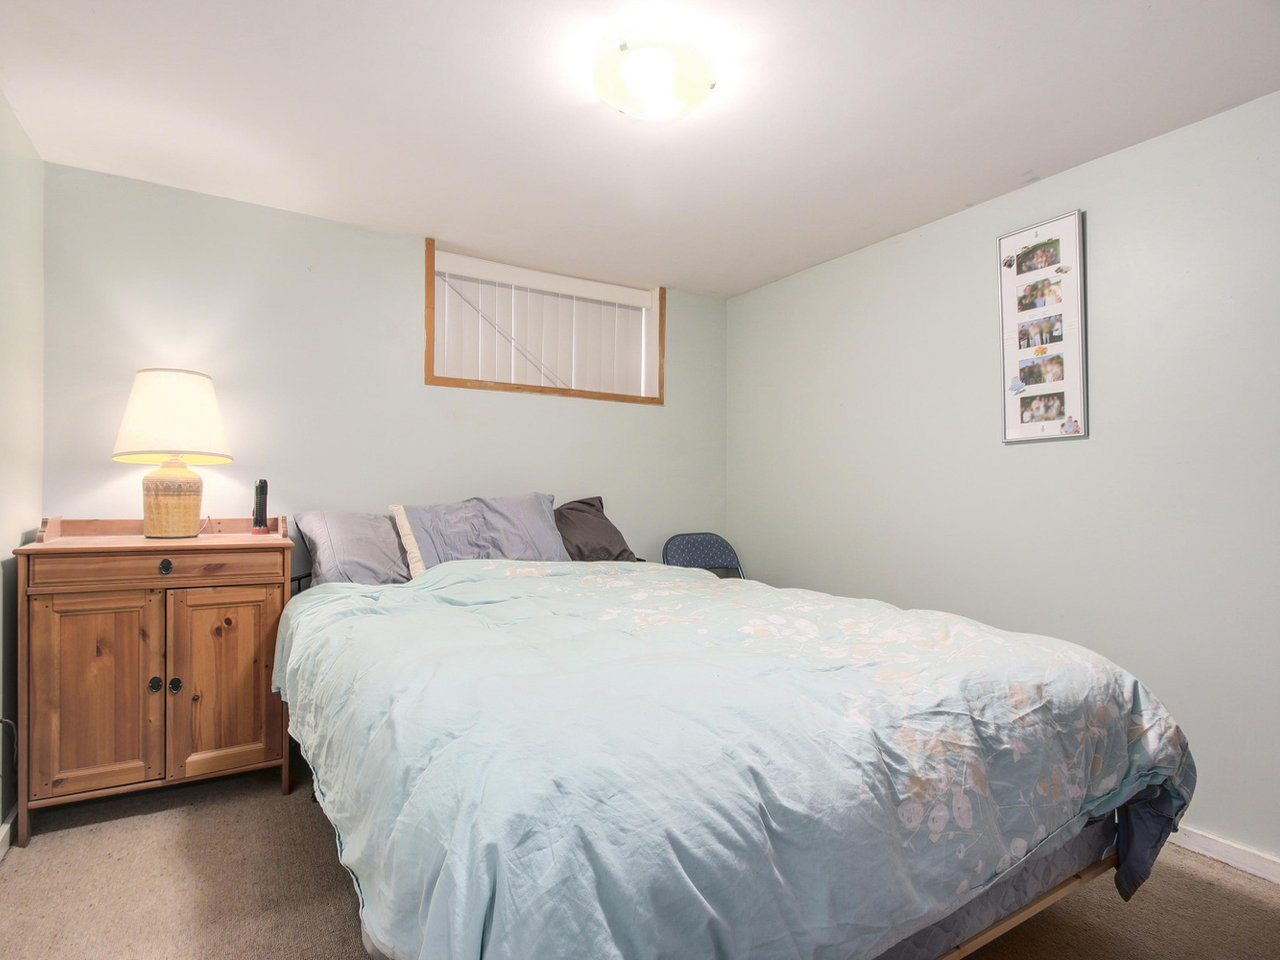 Photo 13: 3939 W KING EDWARD Avenue in Vancouver: Dunbar House for sale (Vancouver West)  : MLS® # R2191736